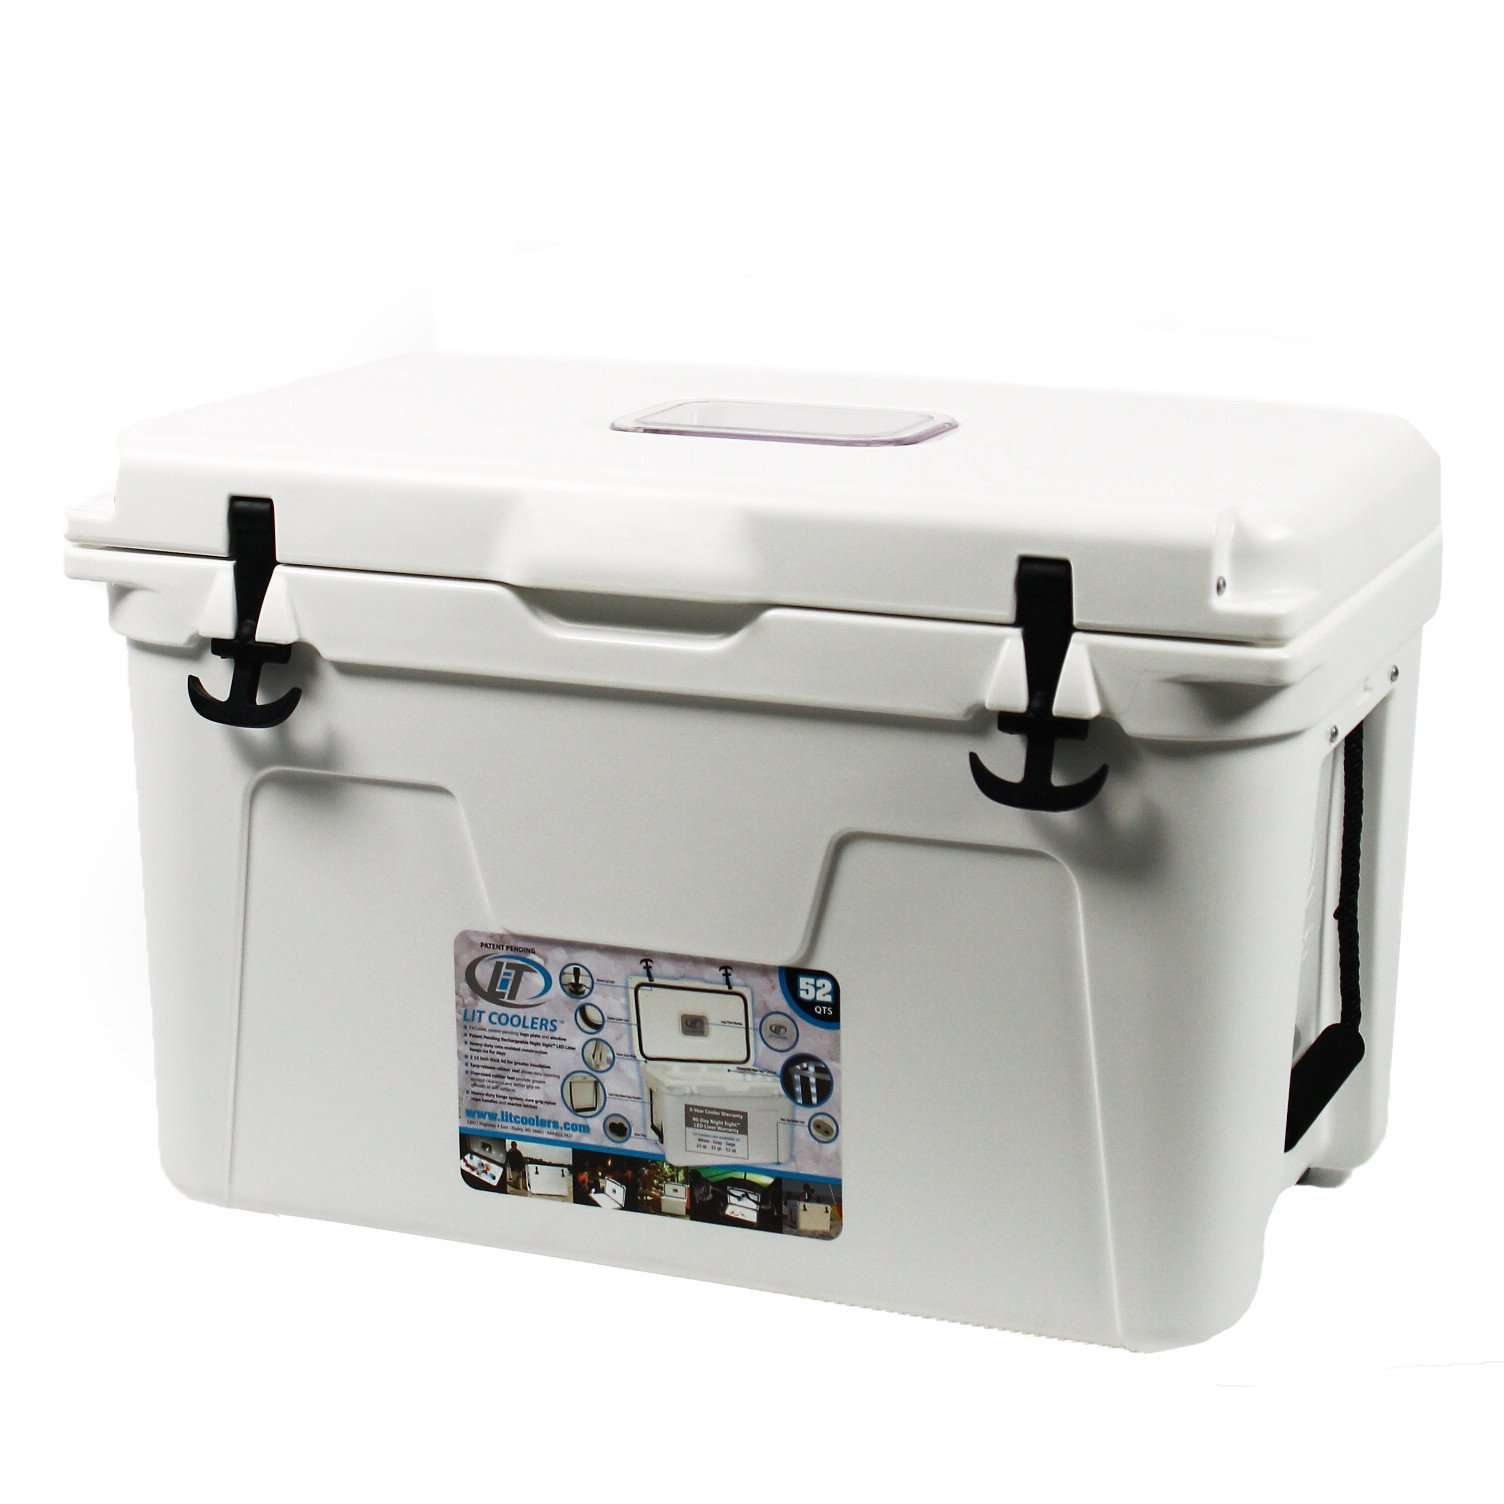 Coolers - Limited Edition Longshanks Cooler 52qt In White By Lit Coolers